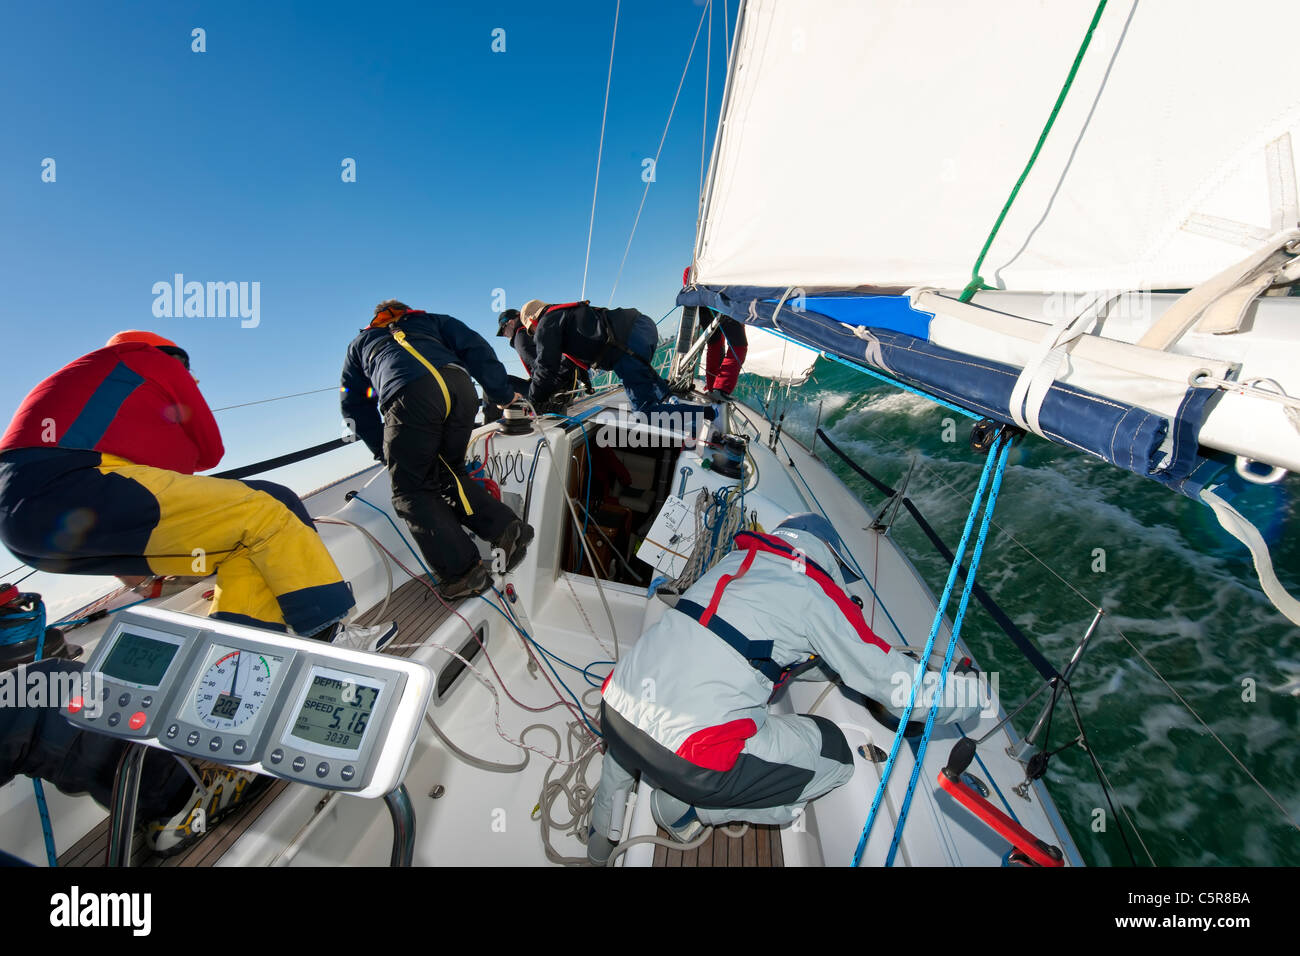 'Teamwork' as shown by an offshore yacht Racing crew. - Stock Image